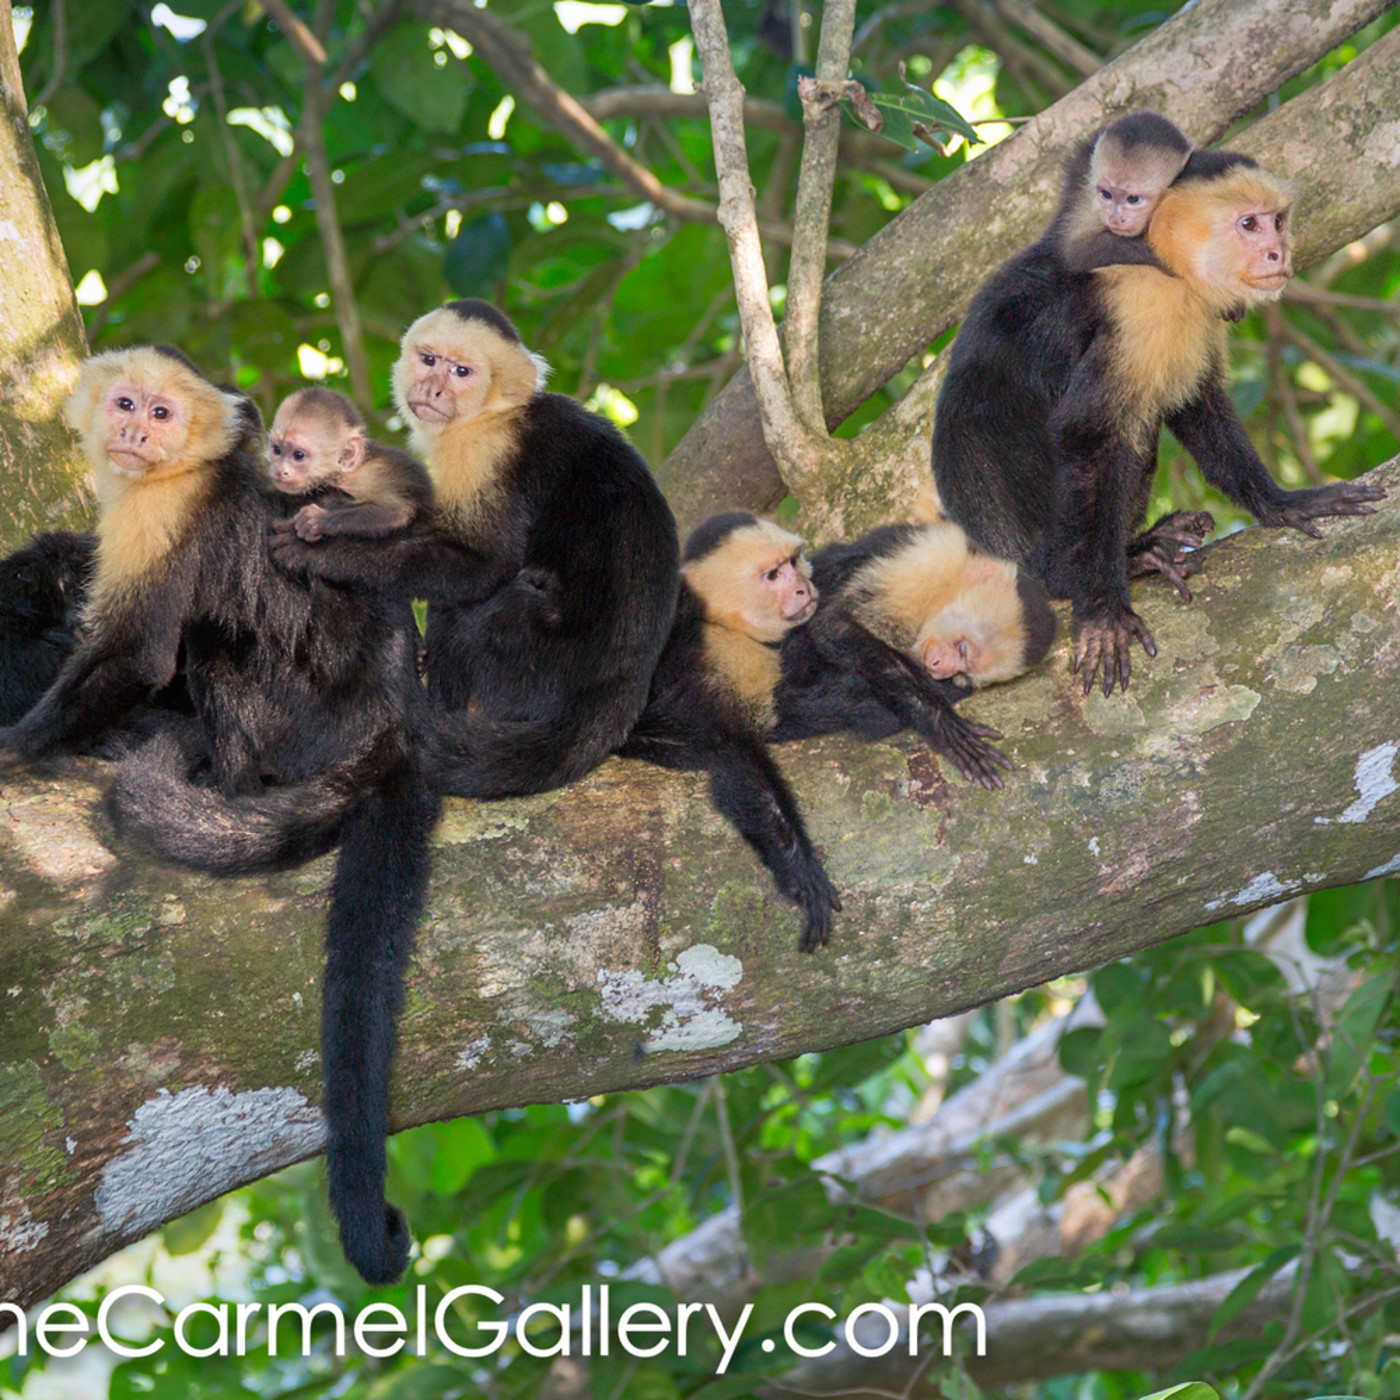 Rain forest monkey family lf6fns